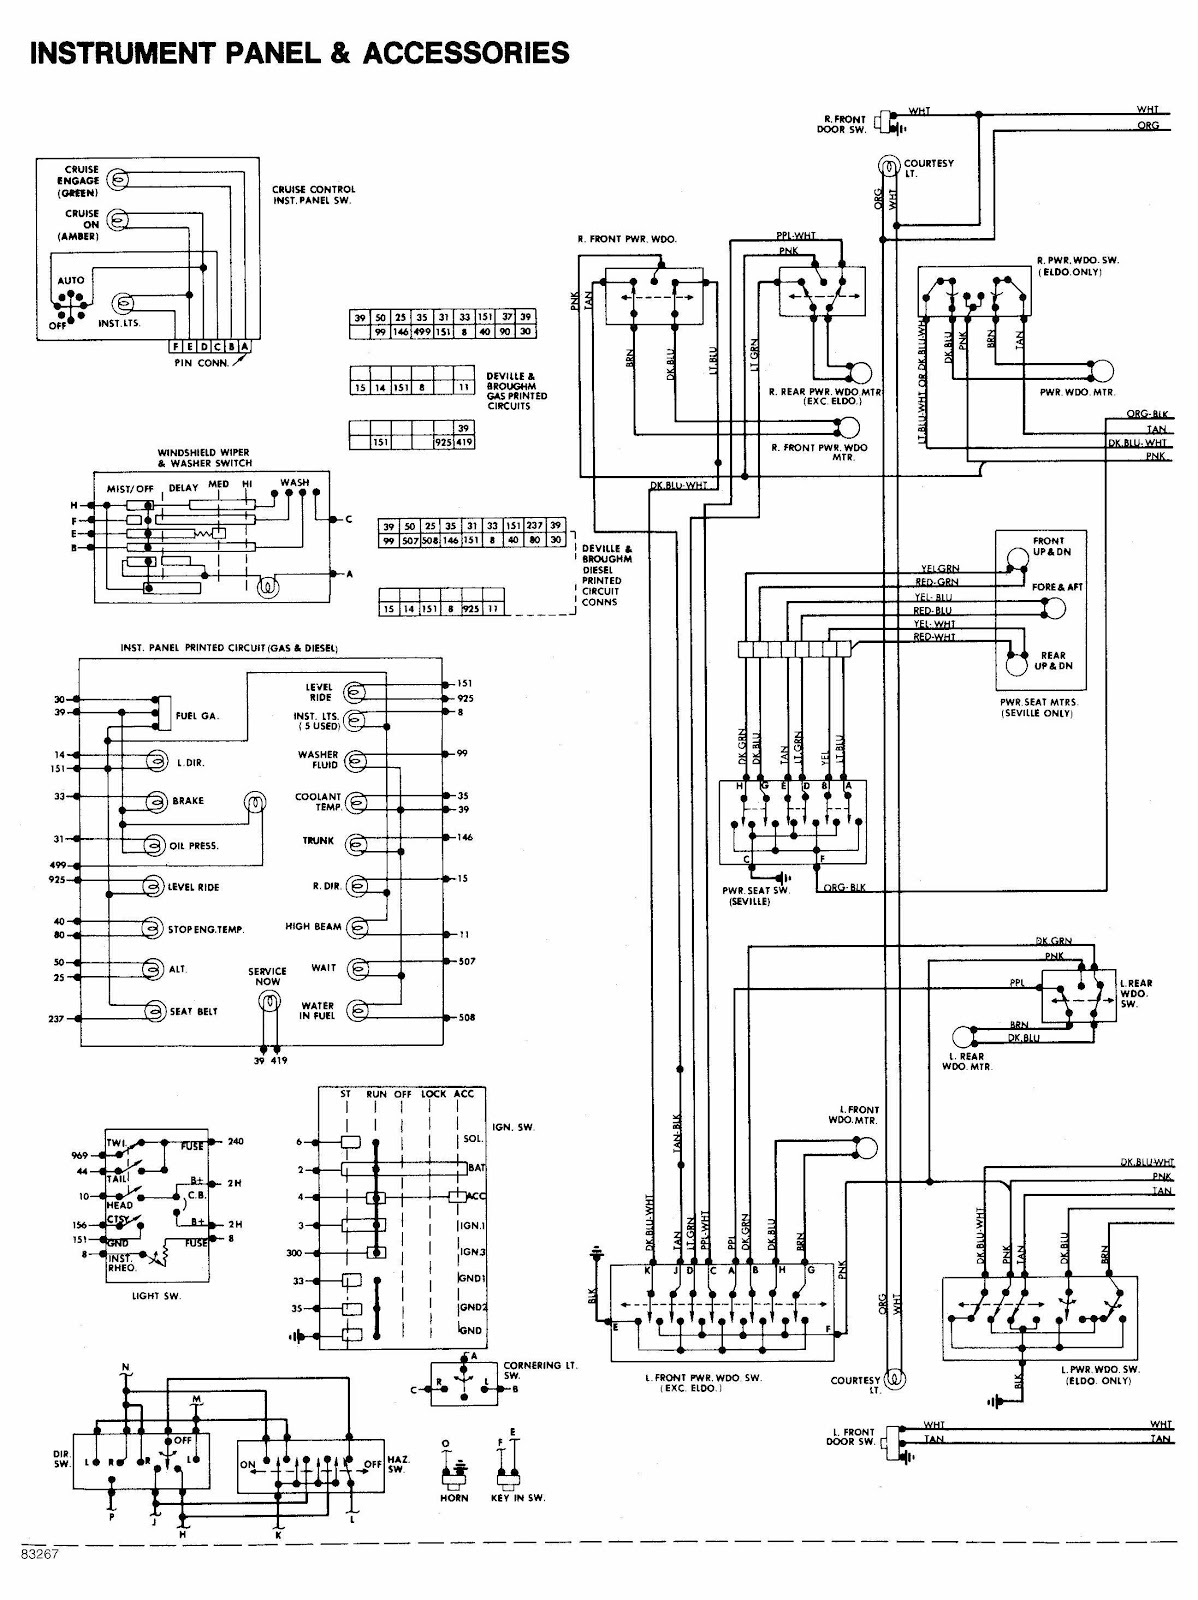 Cadillac Deville Instrument Panel And Accessories Wiring Diagram on Nissan Pathfinder Radio Wiring Harness Diagram